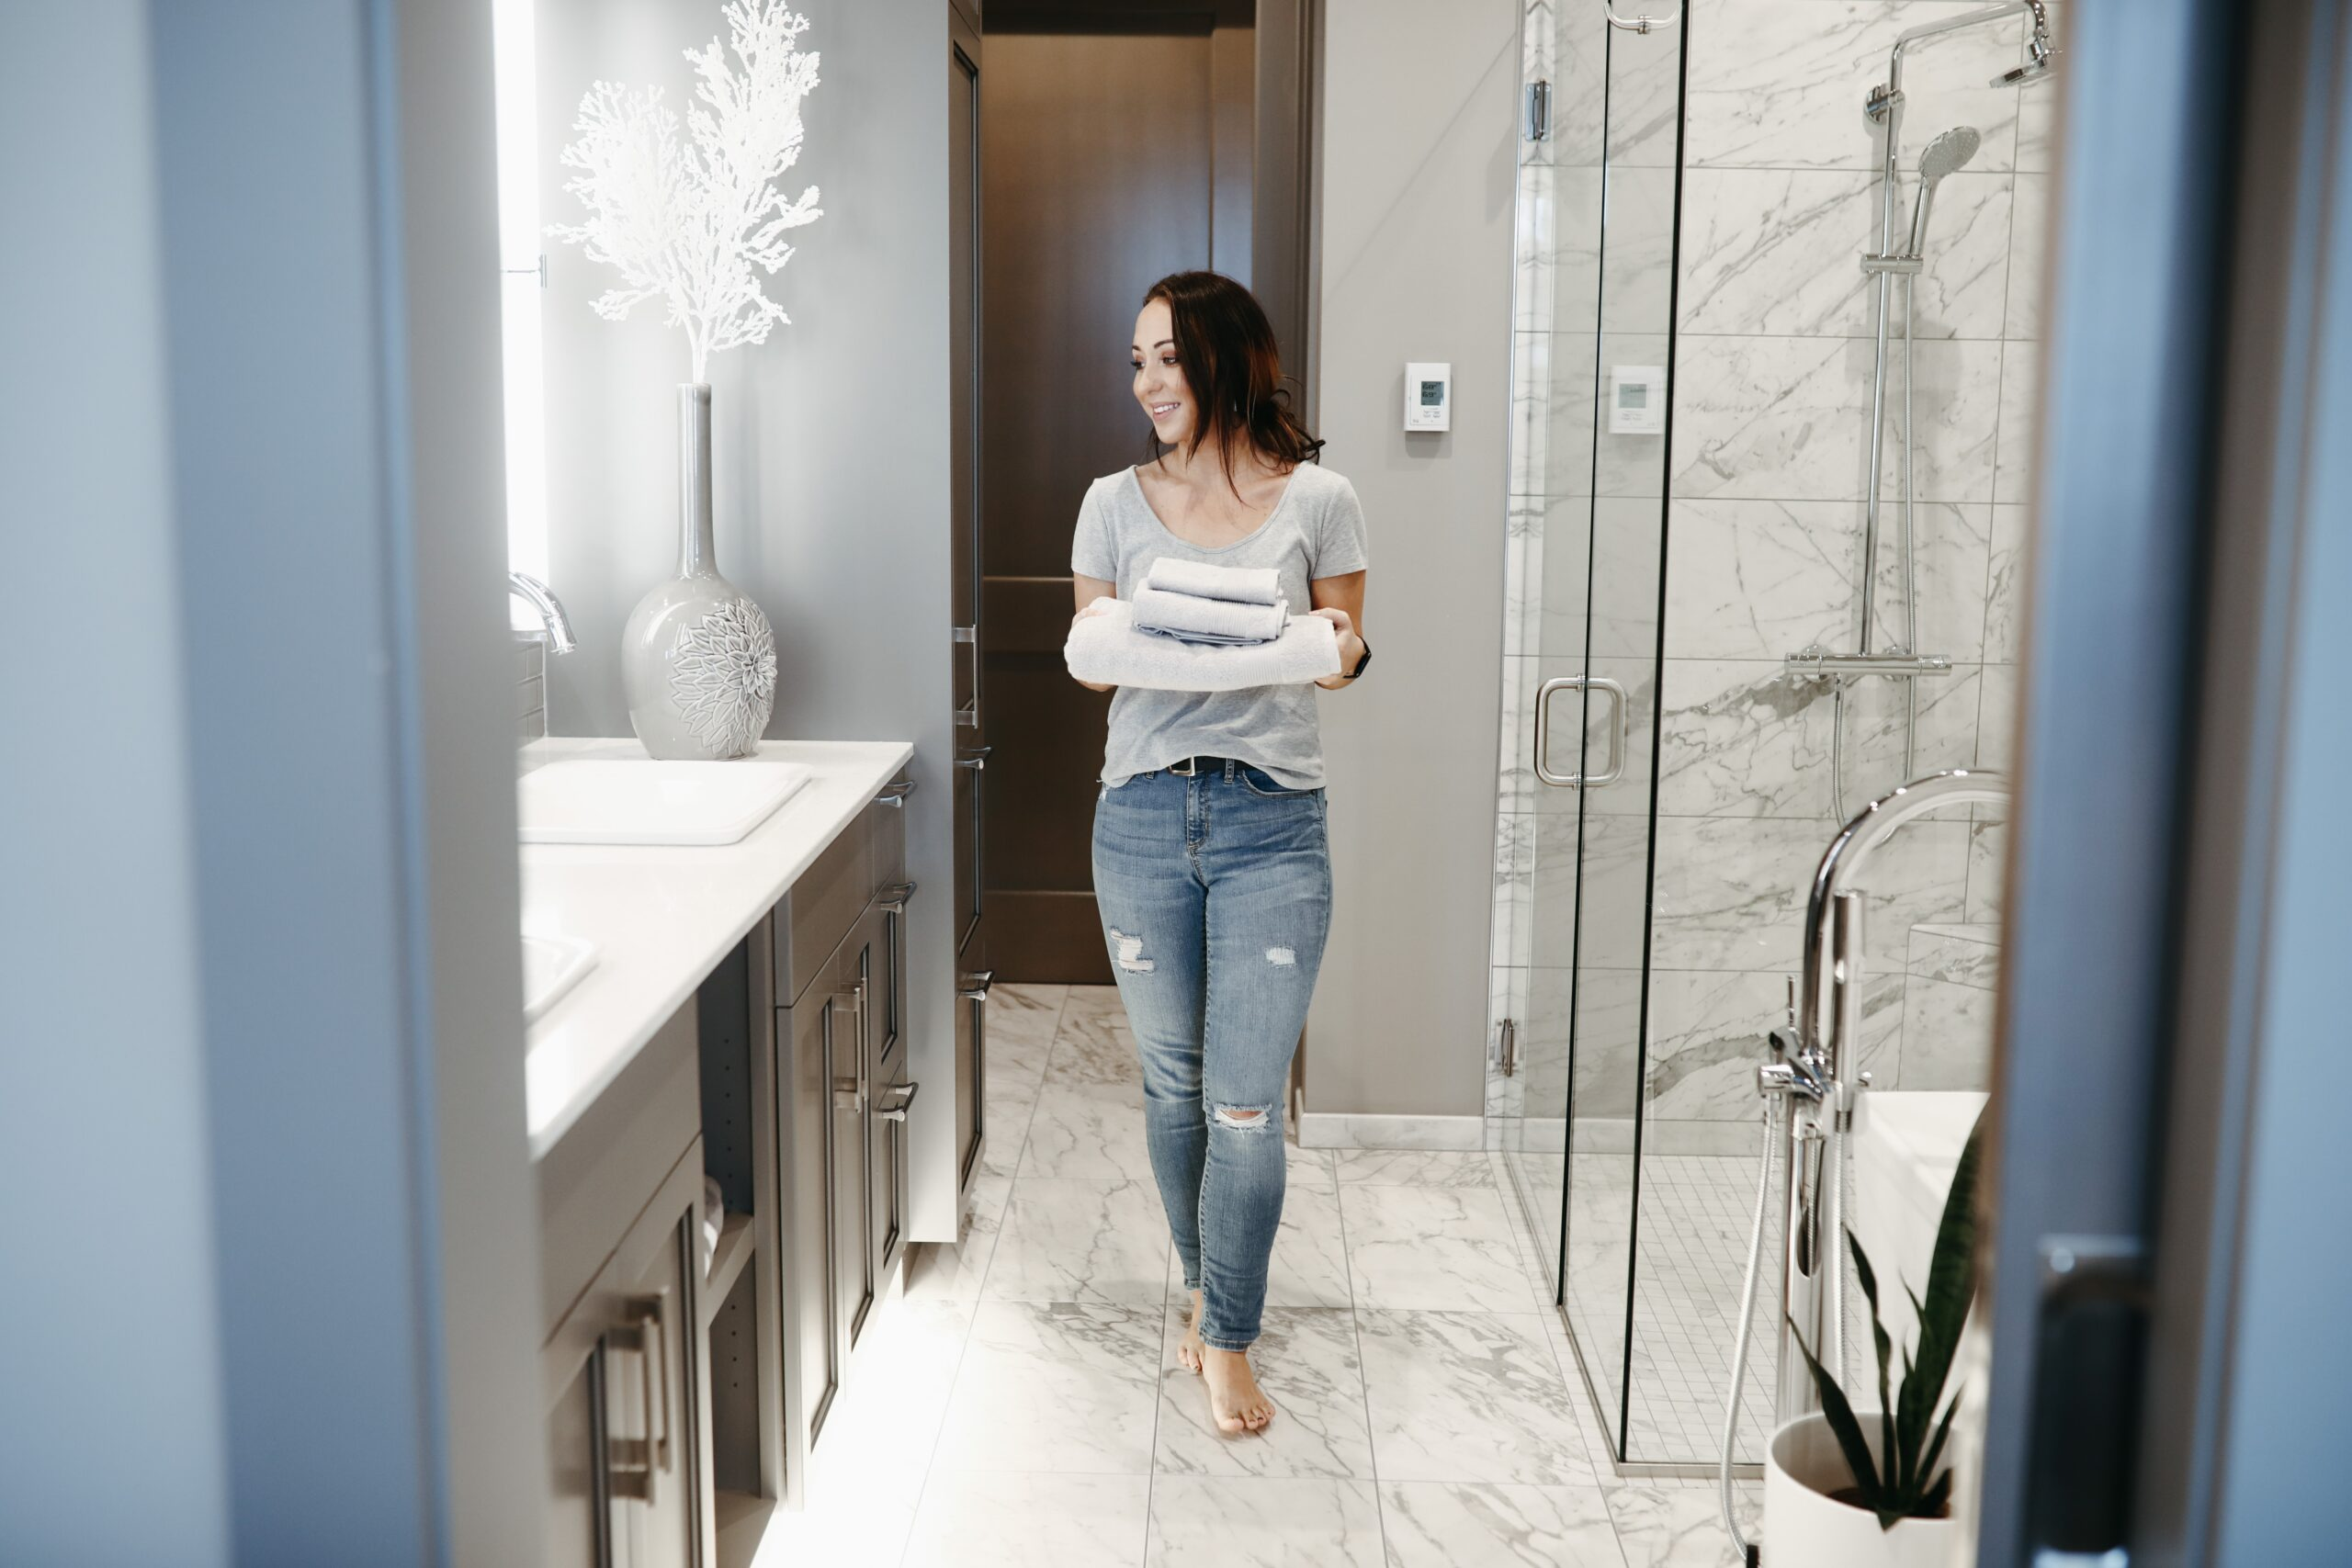 tips on how to stage a bathroom for an open house